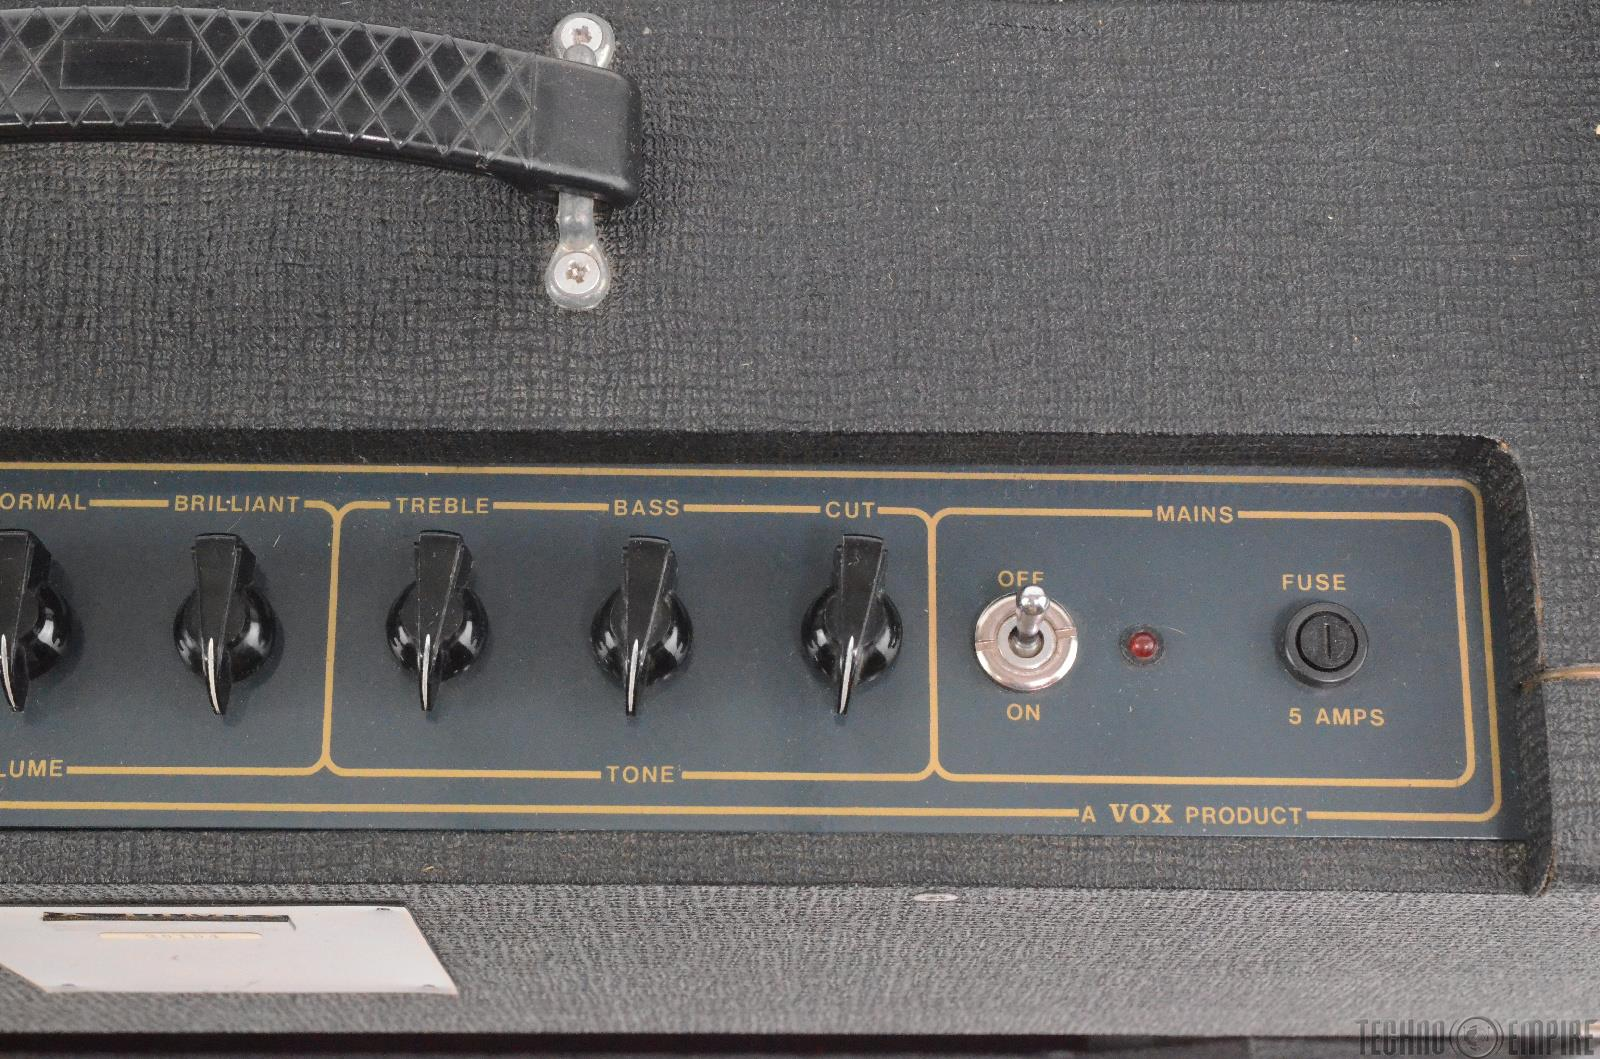 70 80s vox ac30 combo amp amplifier w footswitch owned by andrew 70 80s vox ac30 combo amp amplifier w footswitch owned by andrew gold 29356 fandeluxe Choice Image